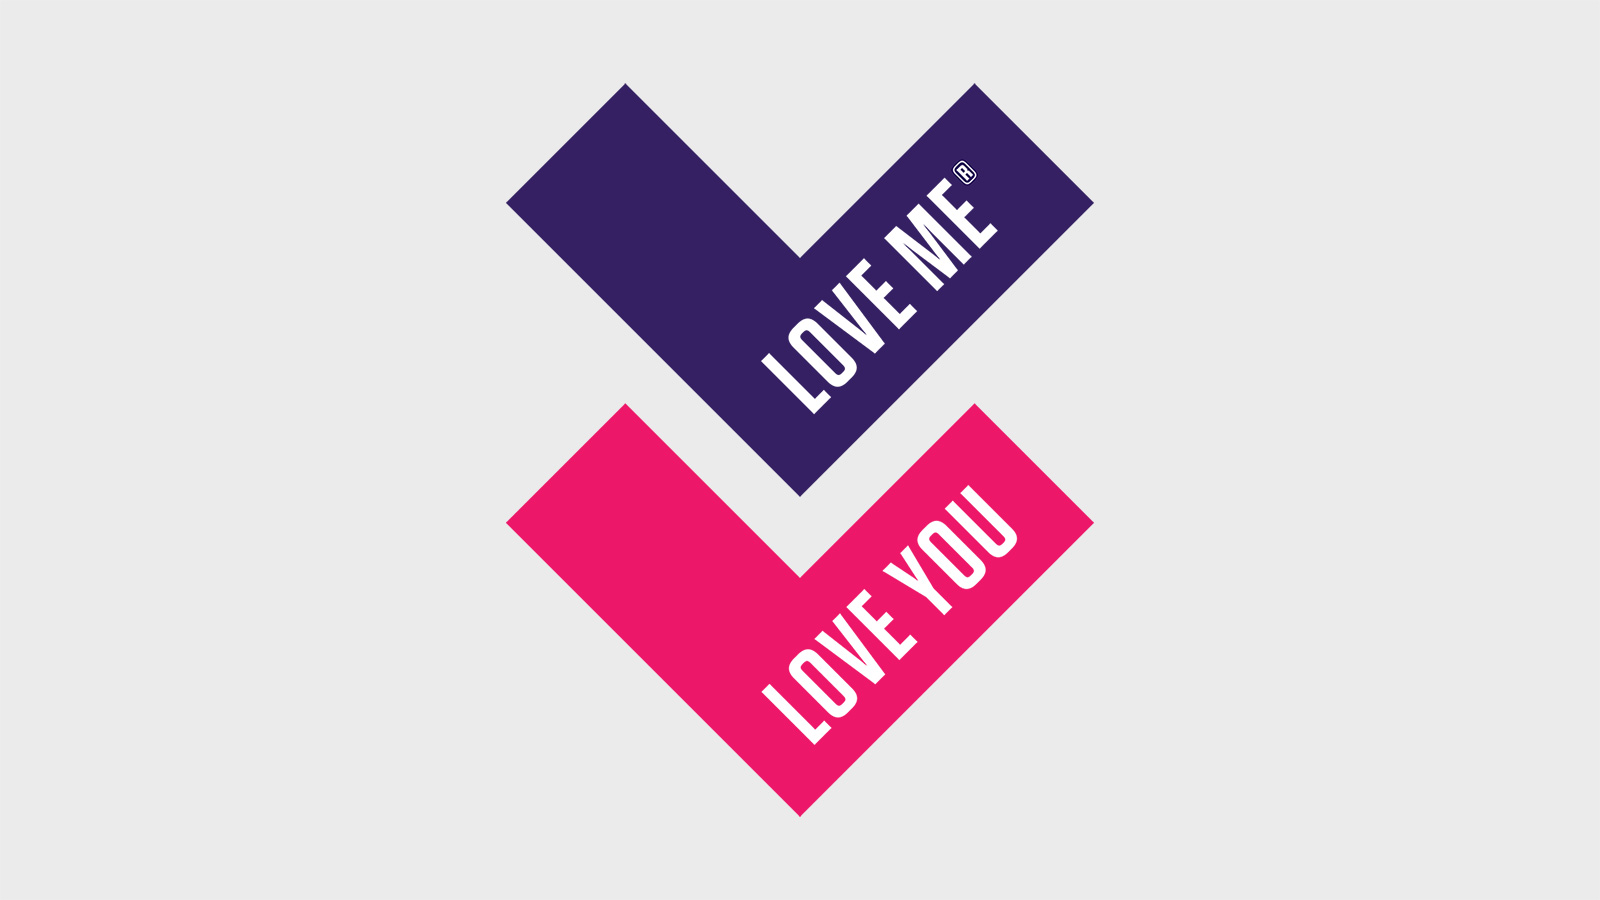 HSV Announces Partnership with Love Me Love You